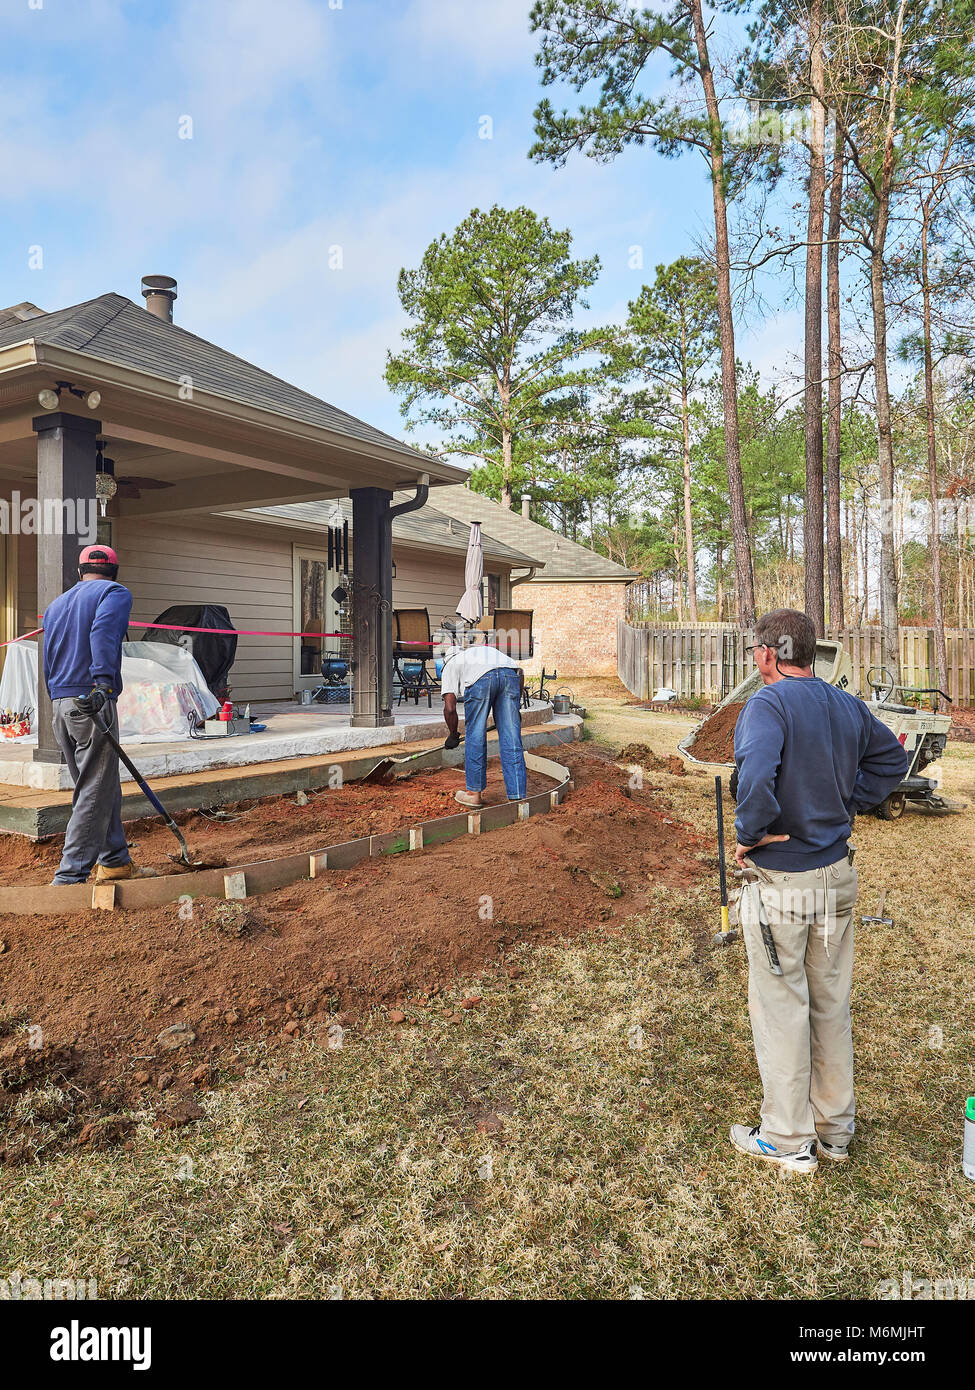 Construction workers at a residential site working on a patio for the home or house in Pike Road Alabama, USA. - Stock Image